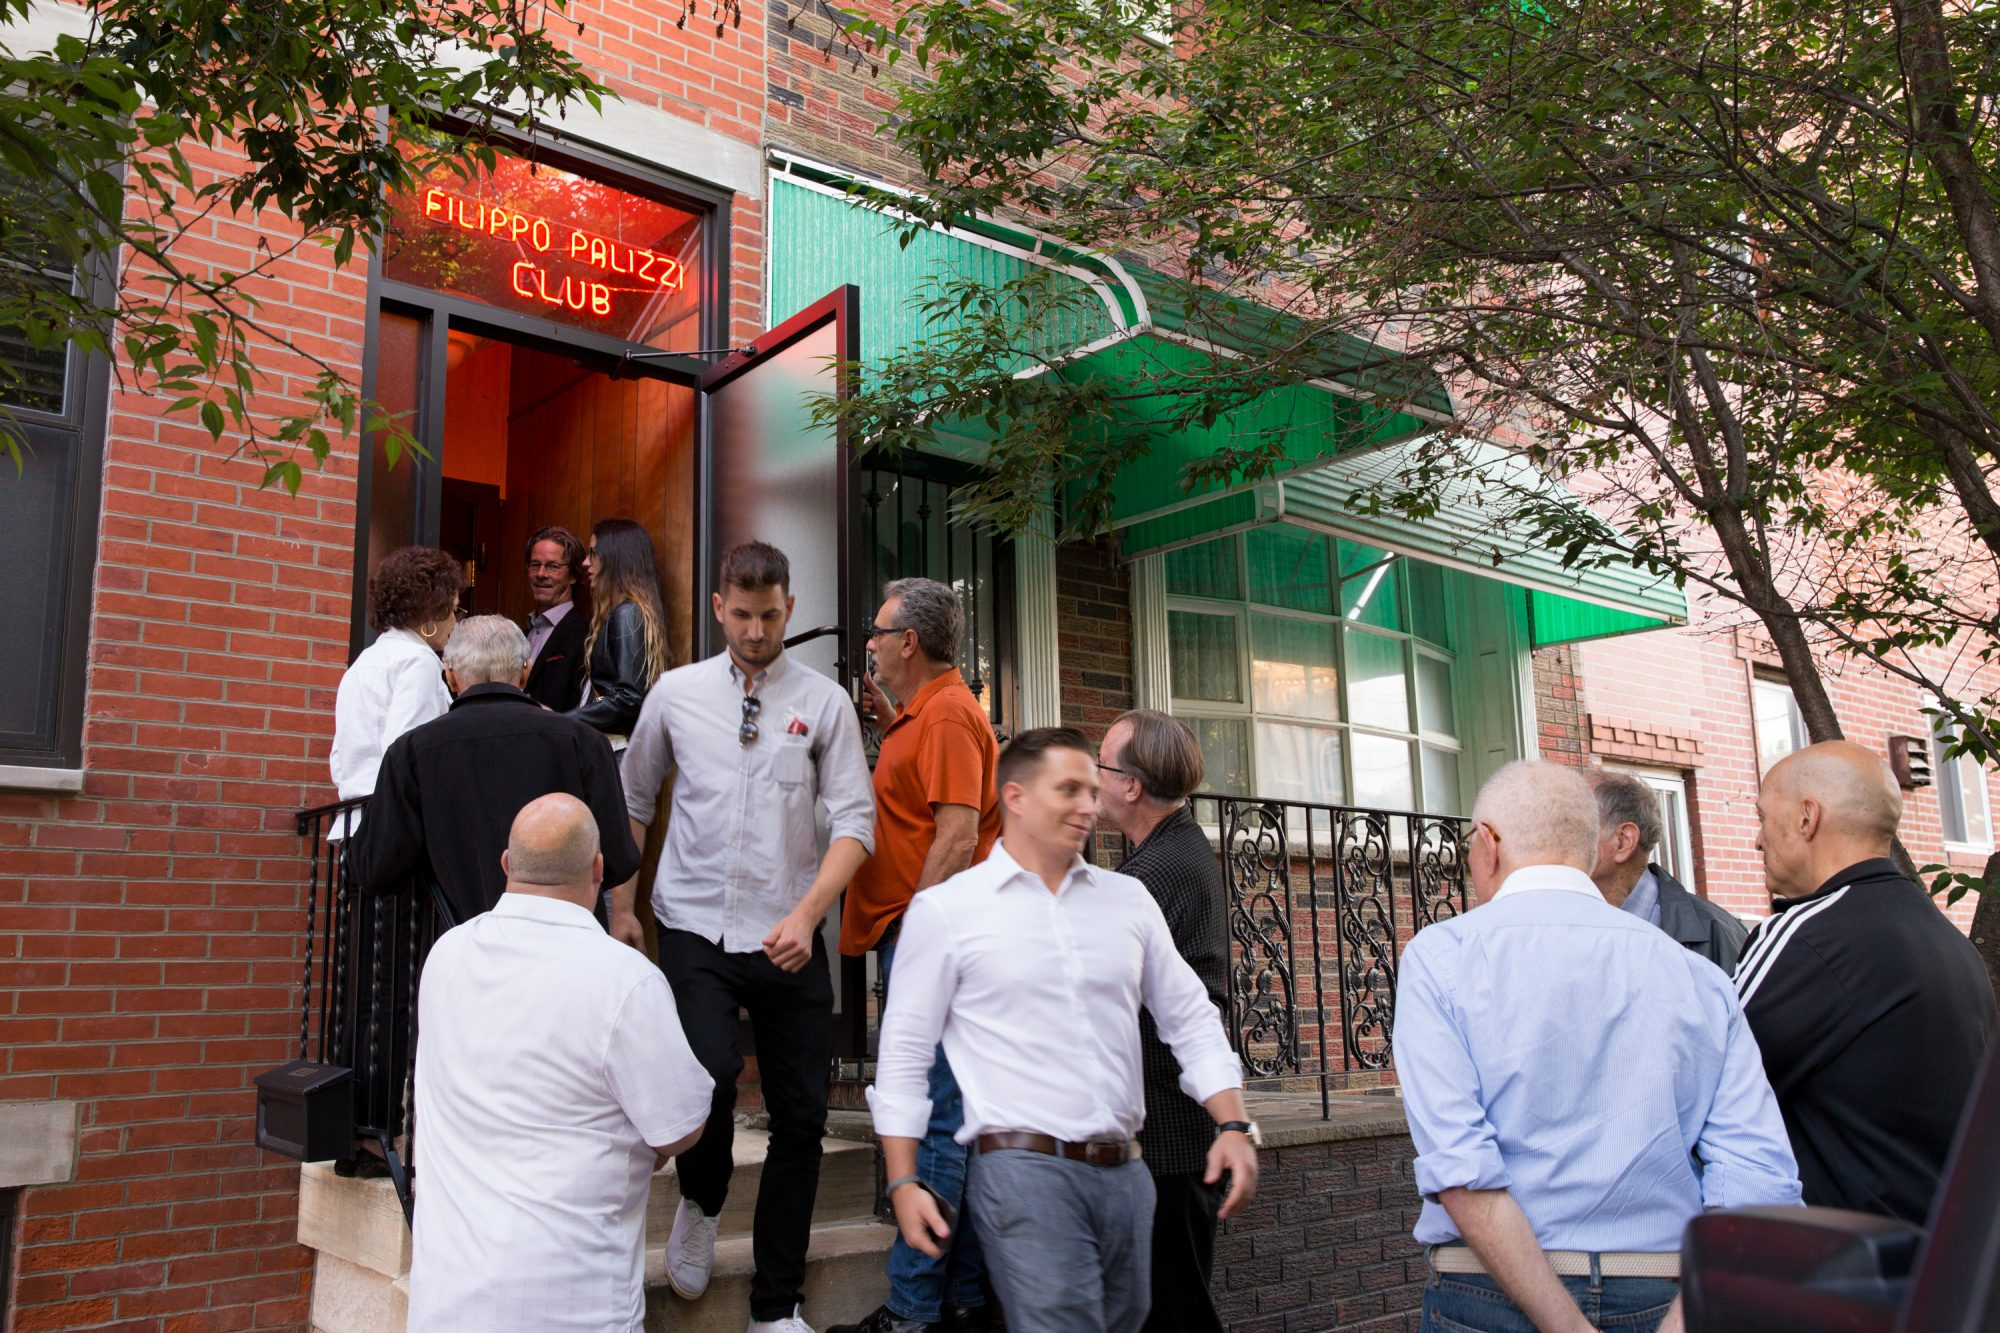 Patrons at the entrance of the Palizzi Social Club, JESSICA GRIFFIN / Staff Photographer